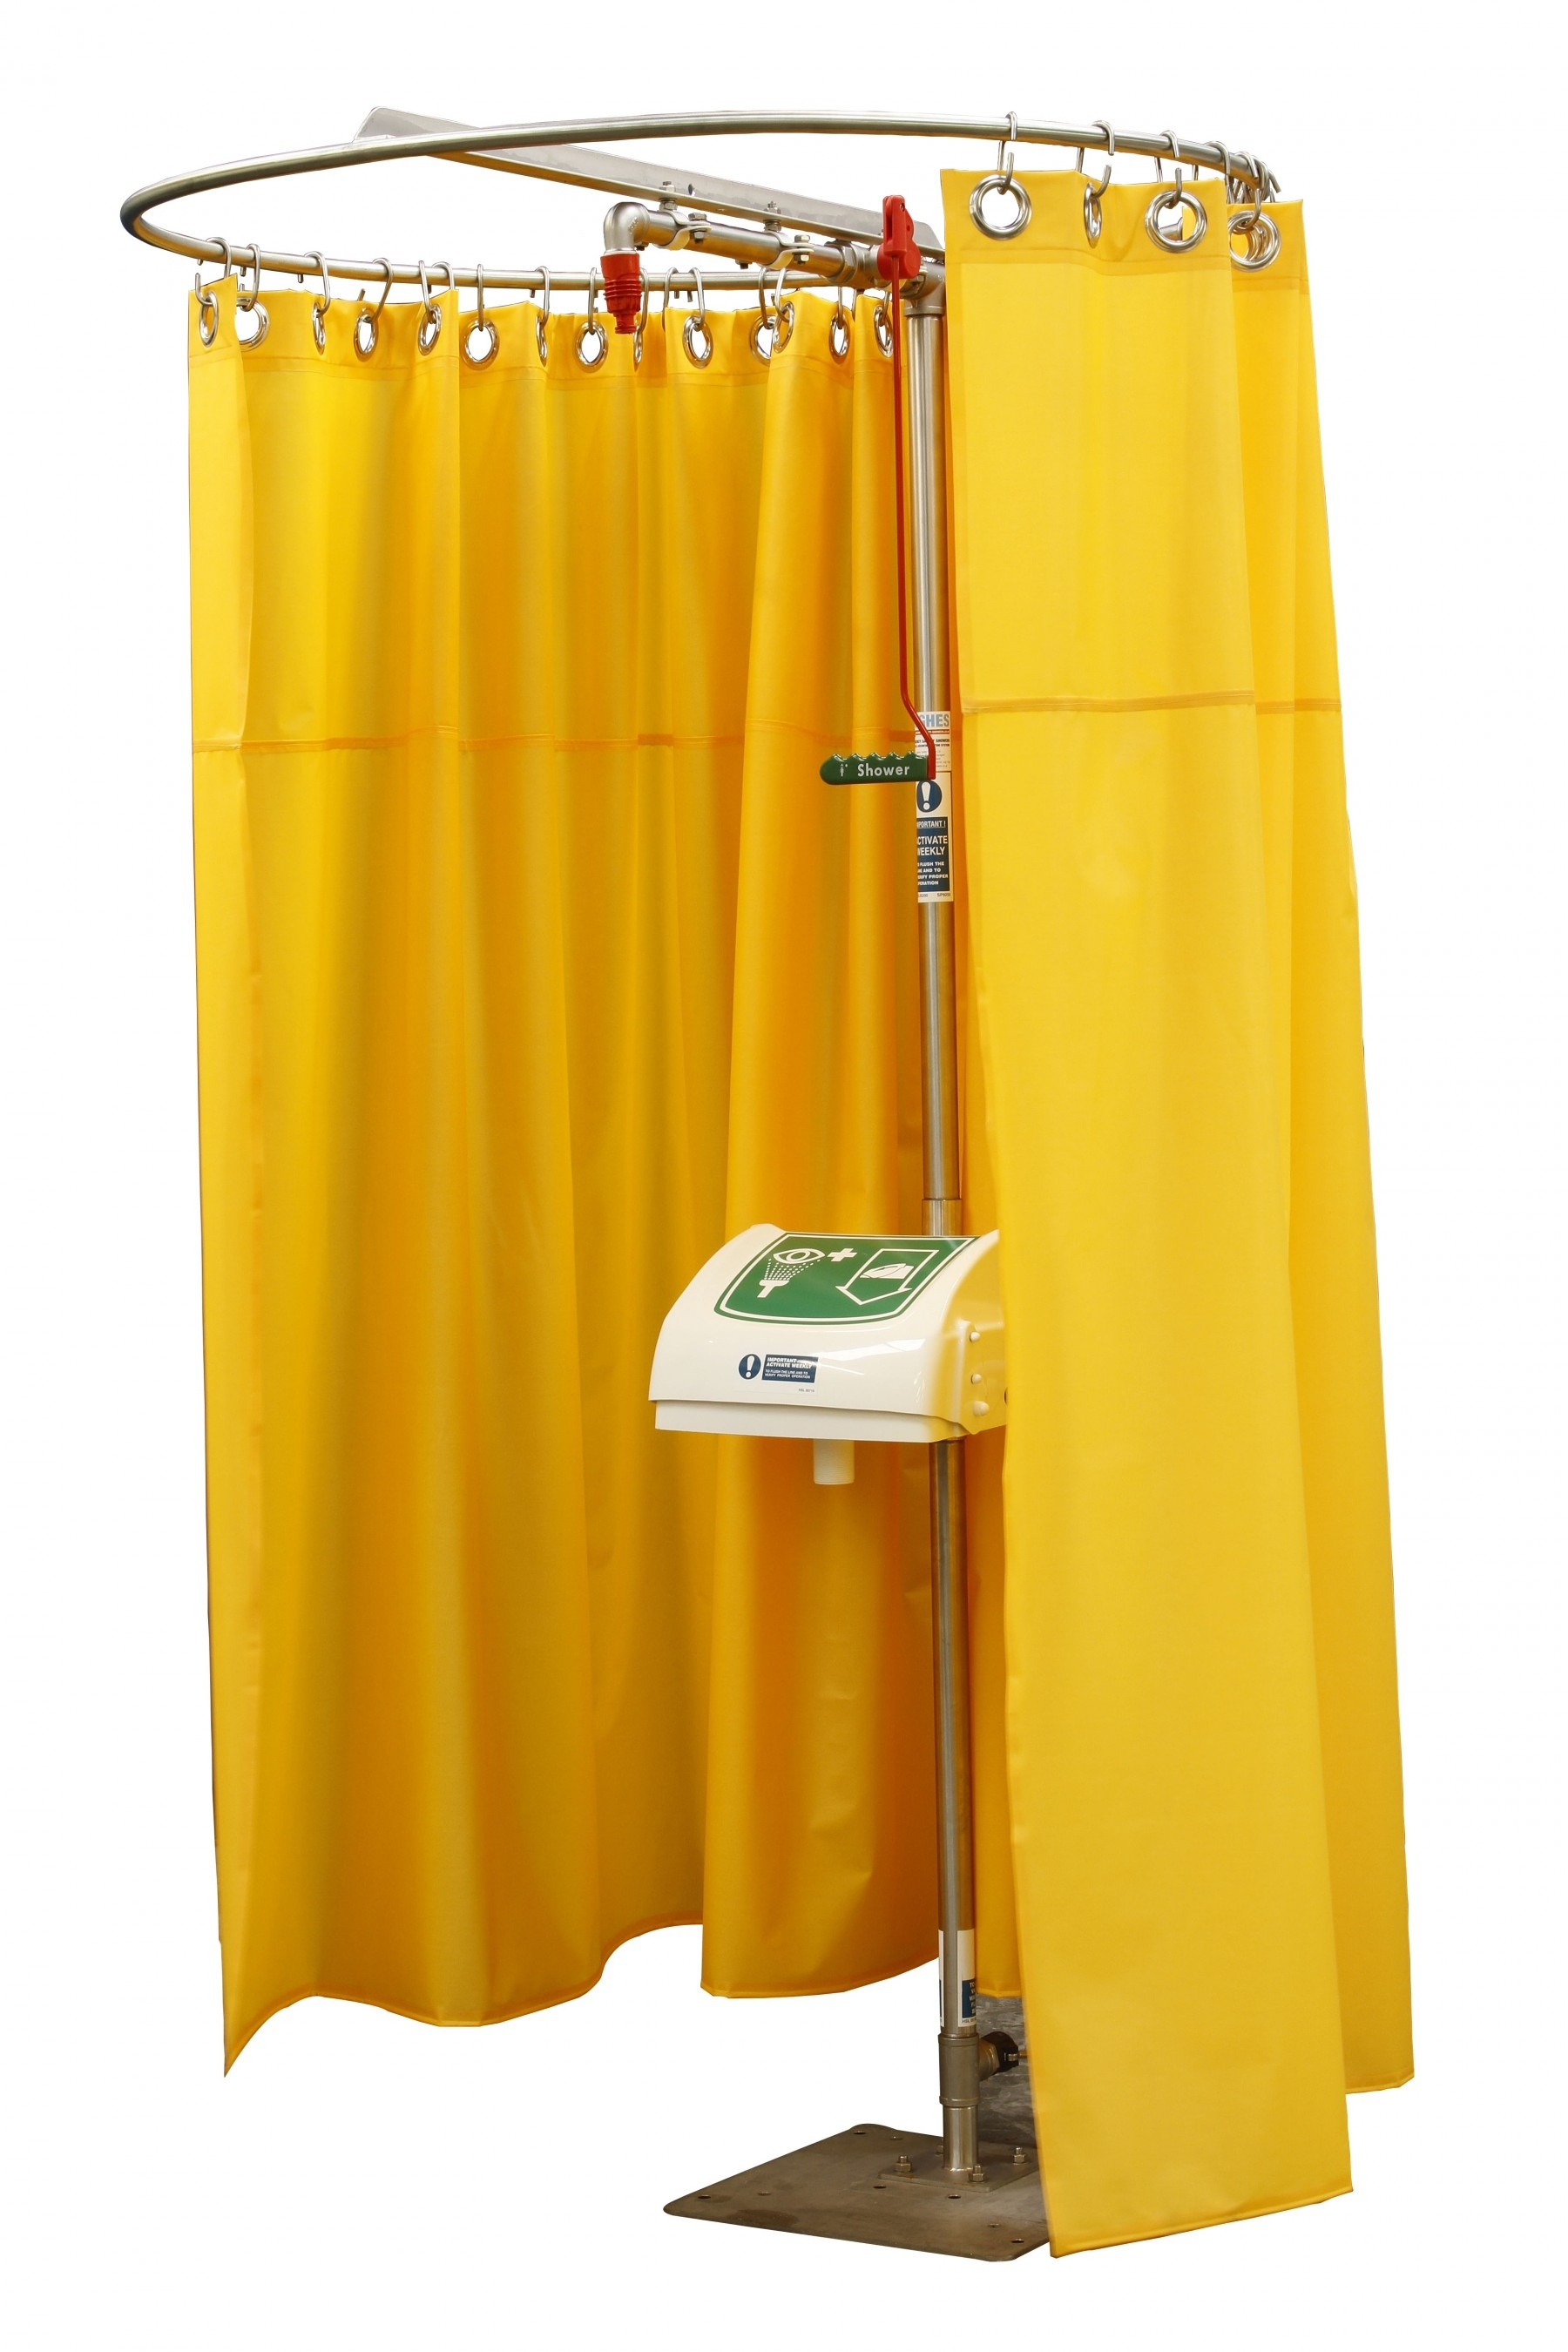 Emergency Shower Modesty Curtain Shower Curtain Ideas for proportions 1800 X 2700